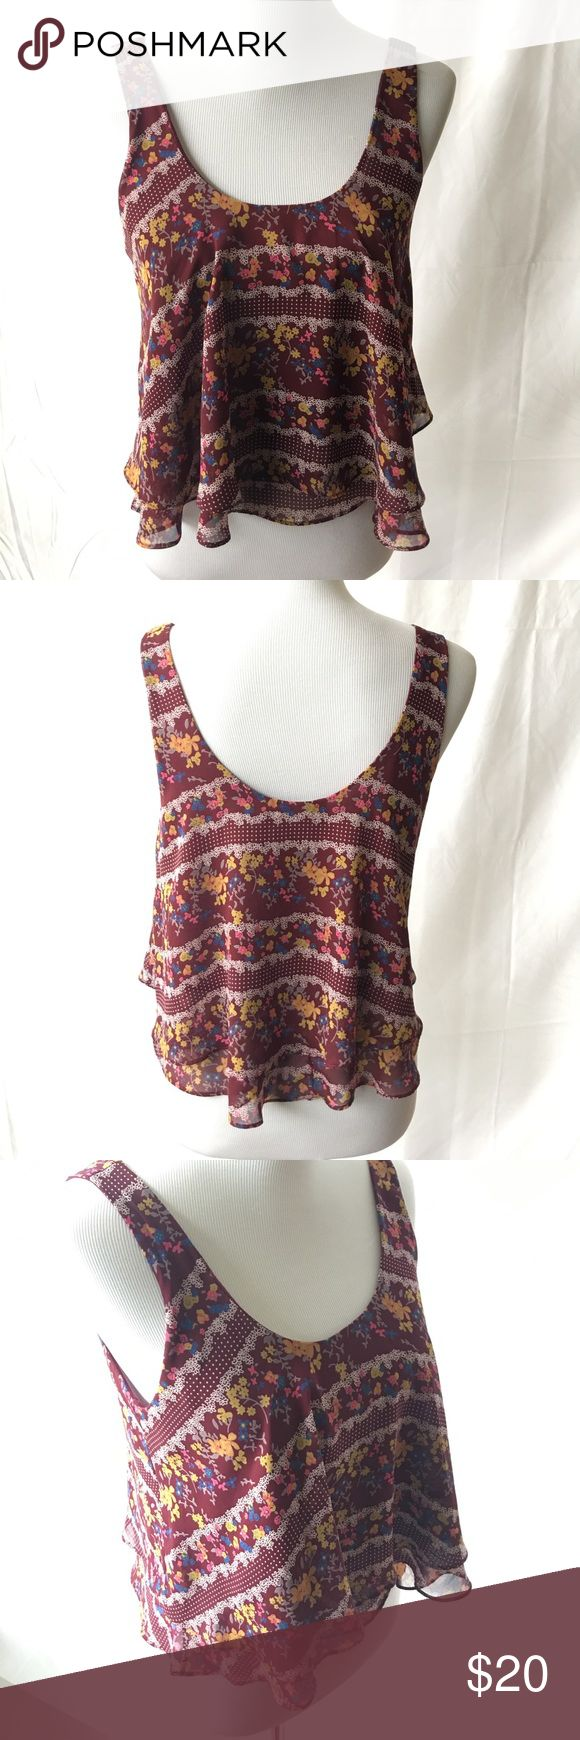 🎉SALE🎉Floral Double Ruffle Cami Tank Gorgeous floral double Ruffle Cami crop tank in Burgundy. Brand is Soprano from Nordstrom. Like NEW condition. 100% Polyester. Reasonable offers welcome. 20% off bundles. Nordstrom Tops Tank Tops